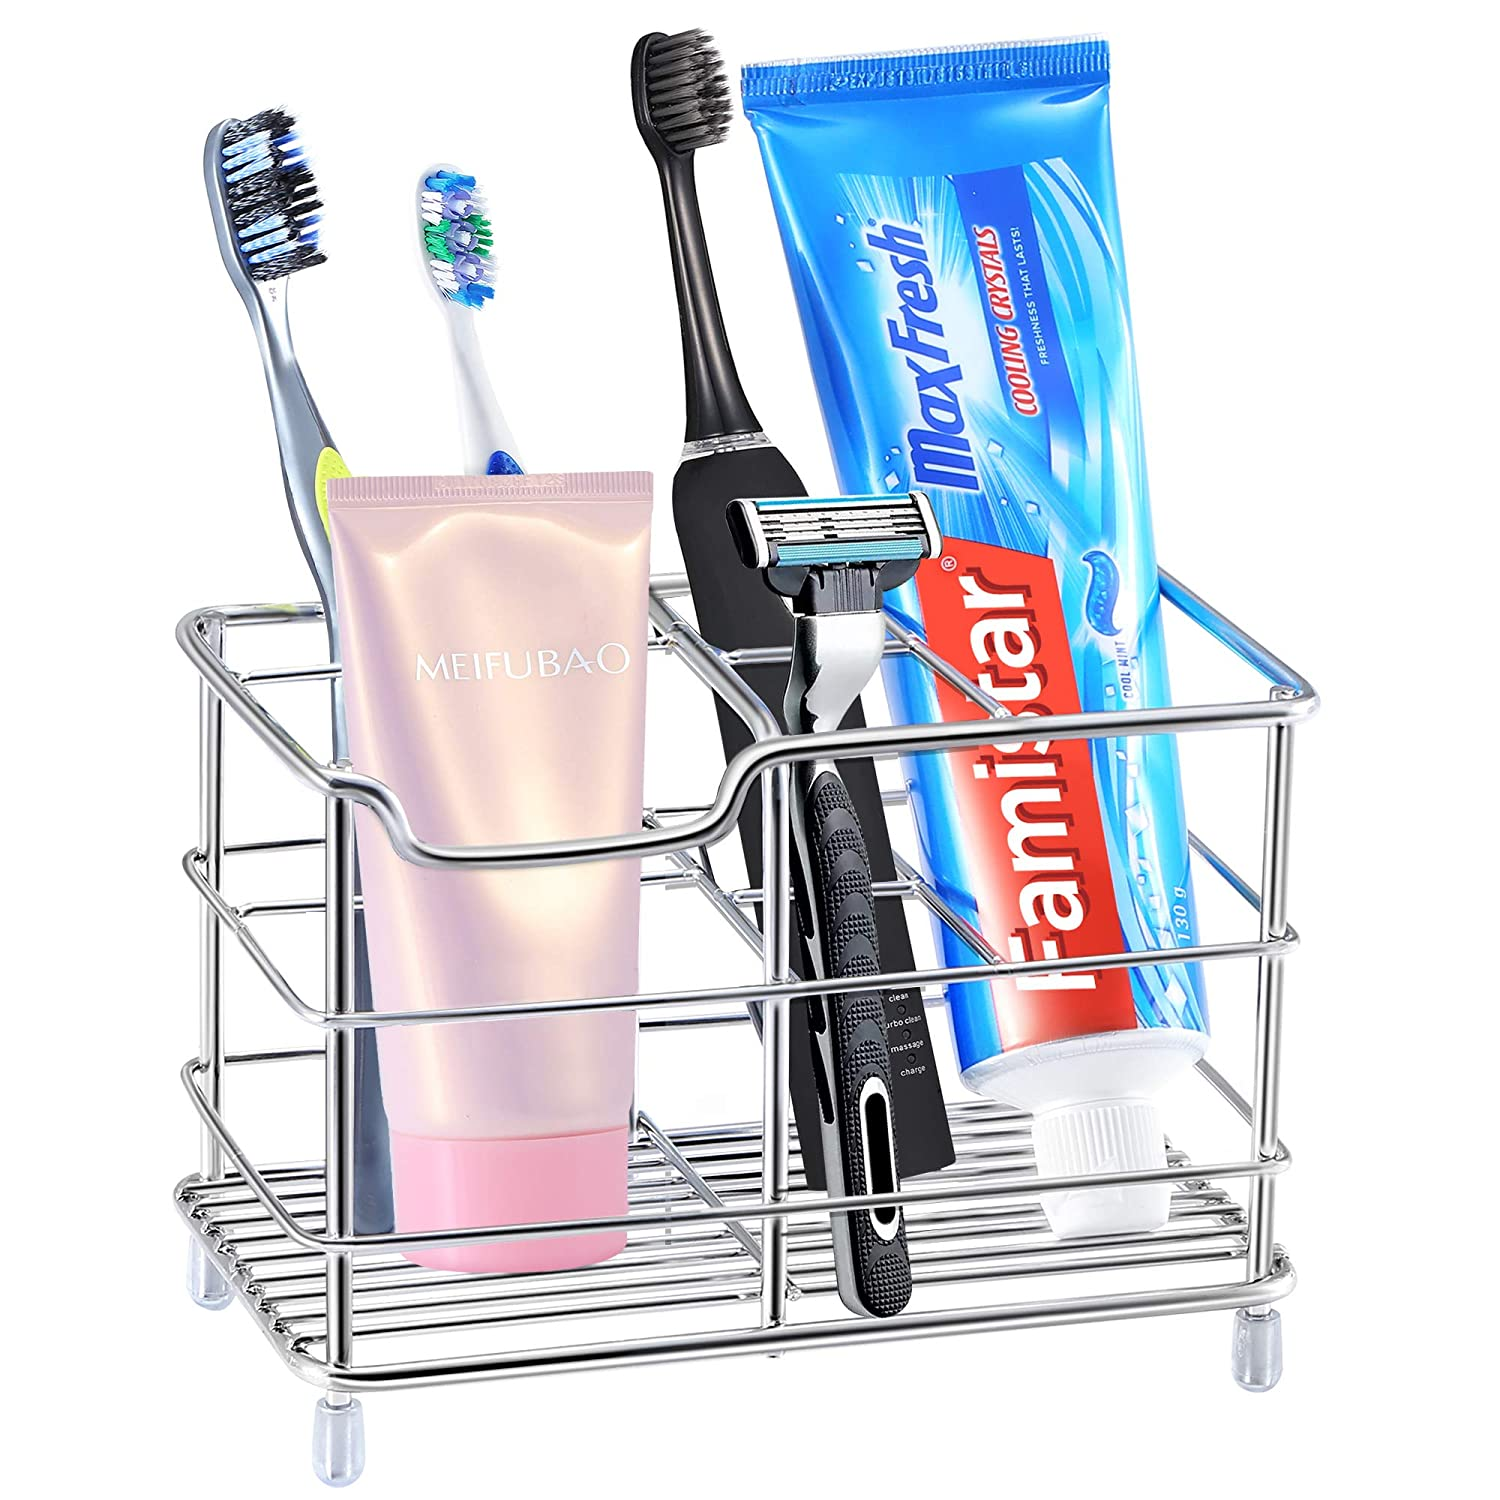 Toothbrush Holder, Stainless Steel Bathroom Storage Organizer Stand Rack - Multi-Functional 6 Slots for Electric Toothbrush, Toothpaste, Cleanser, Comb, Razor